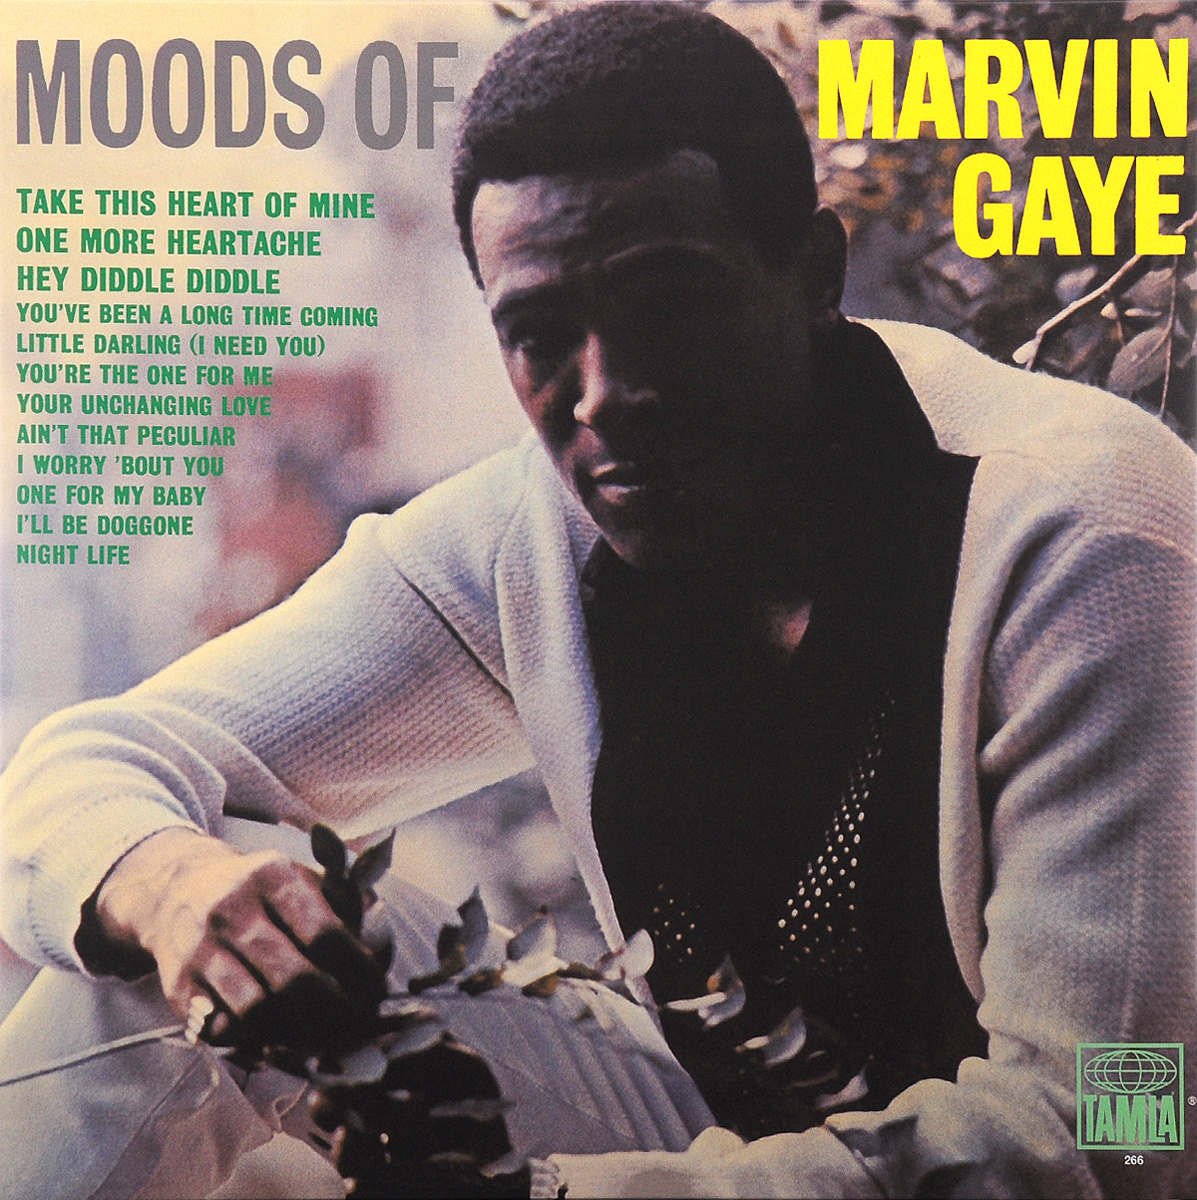 Марвин Гэй Marvin Gaye. Moods Of Marvin Gaye (LP) марвин гэй marvin gaye trouble man motion picture soundtrack lp